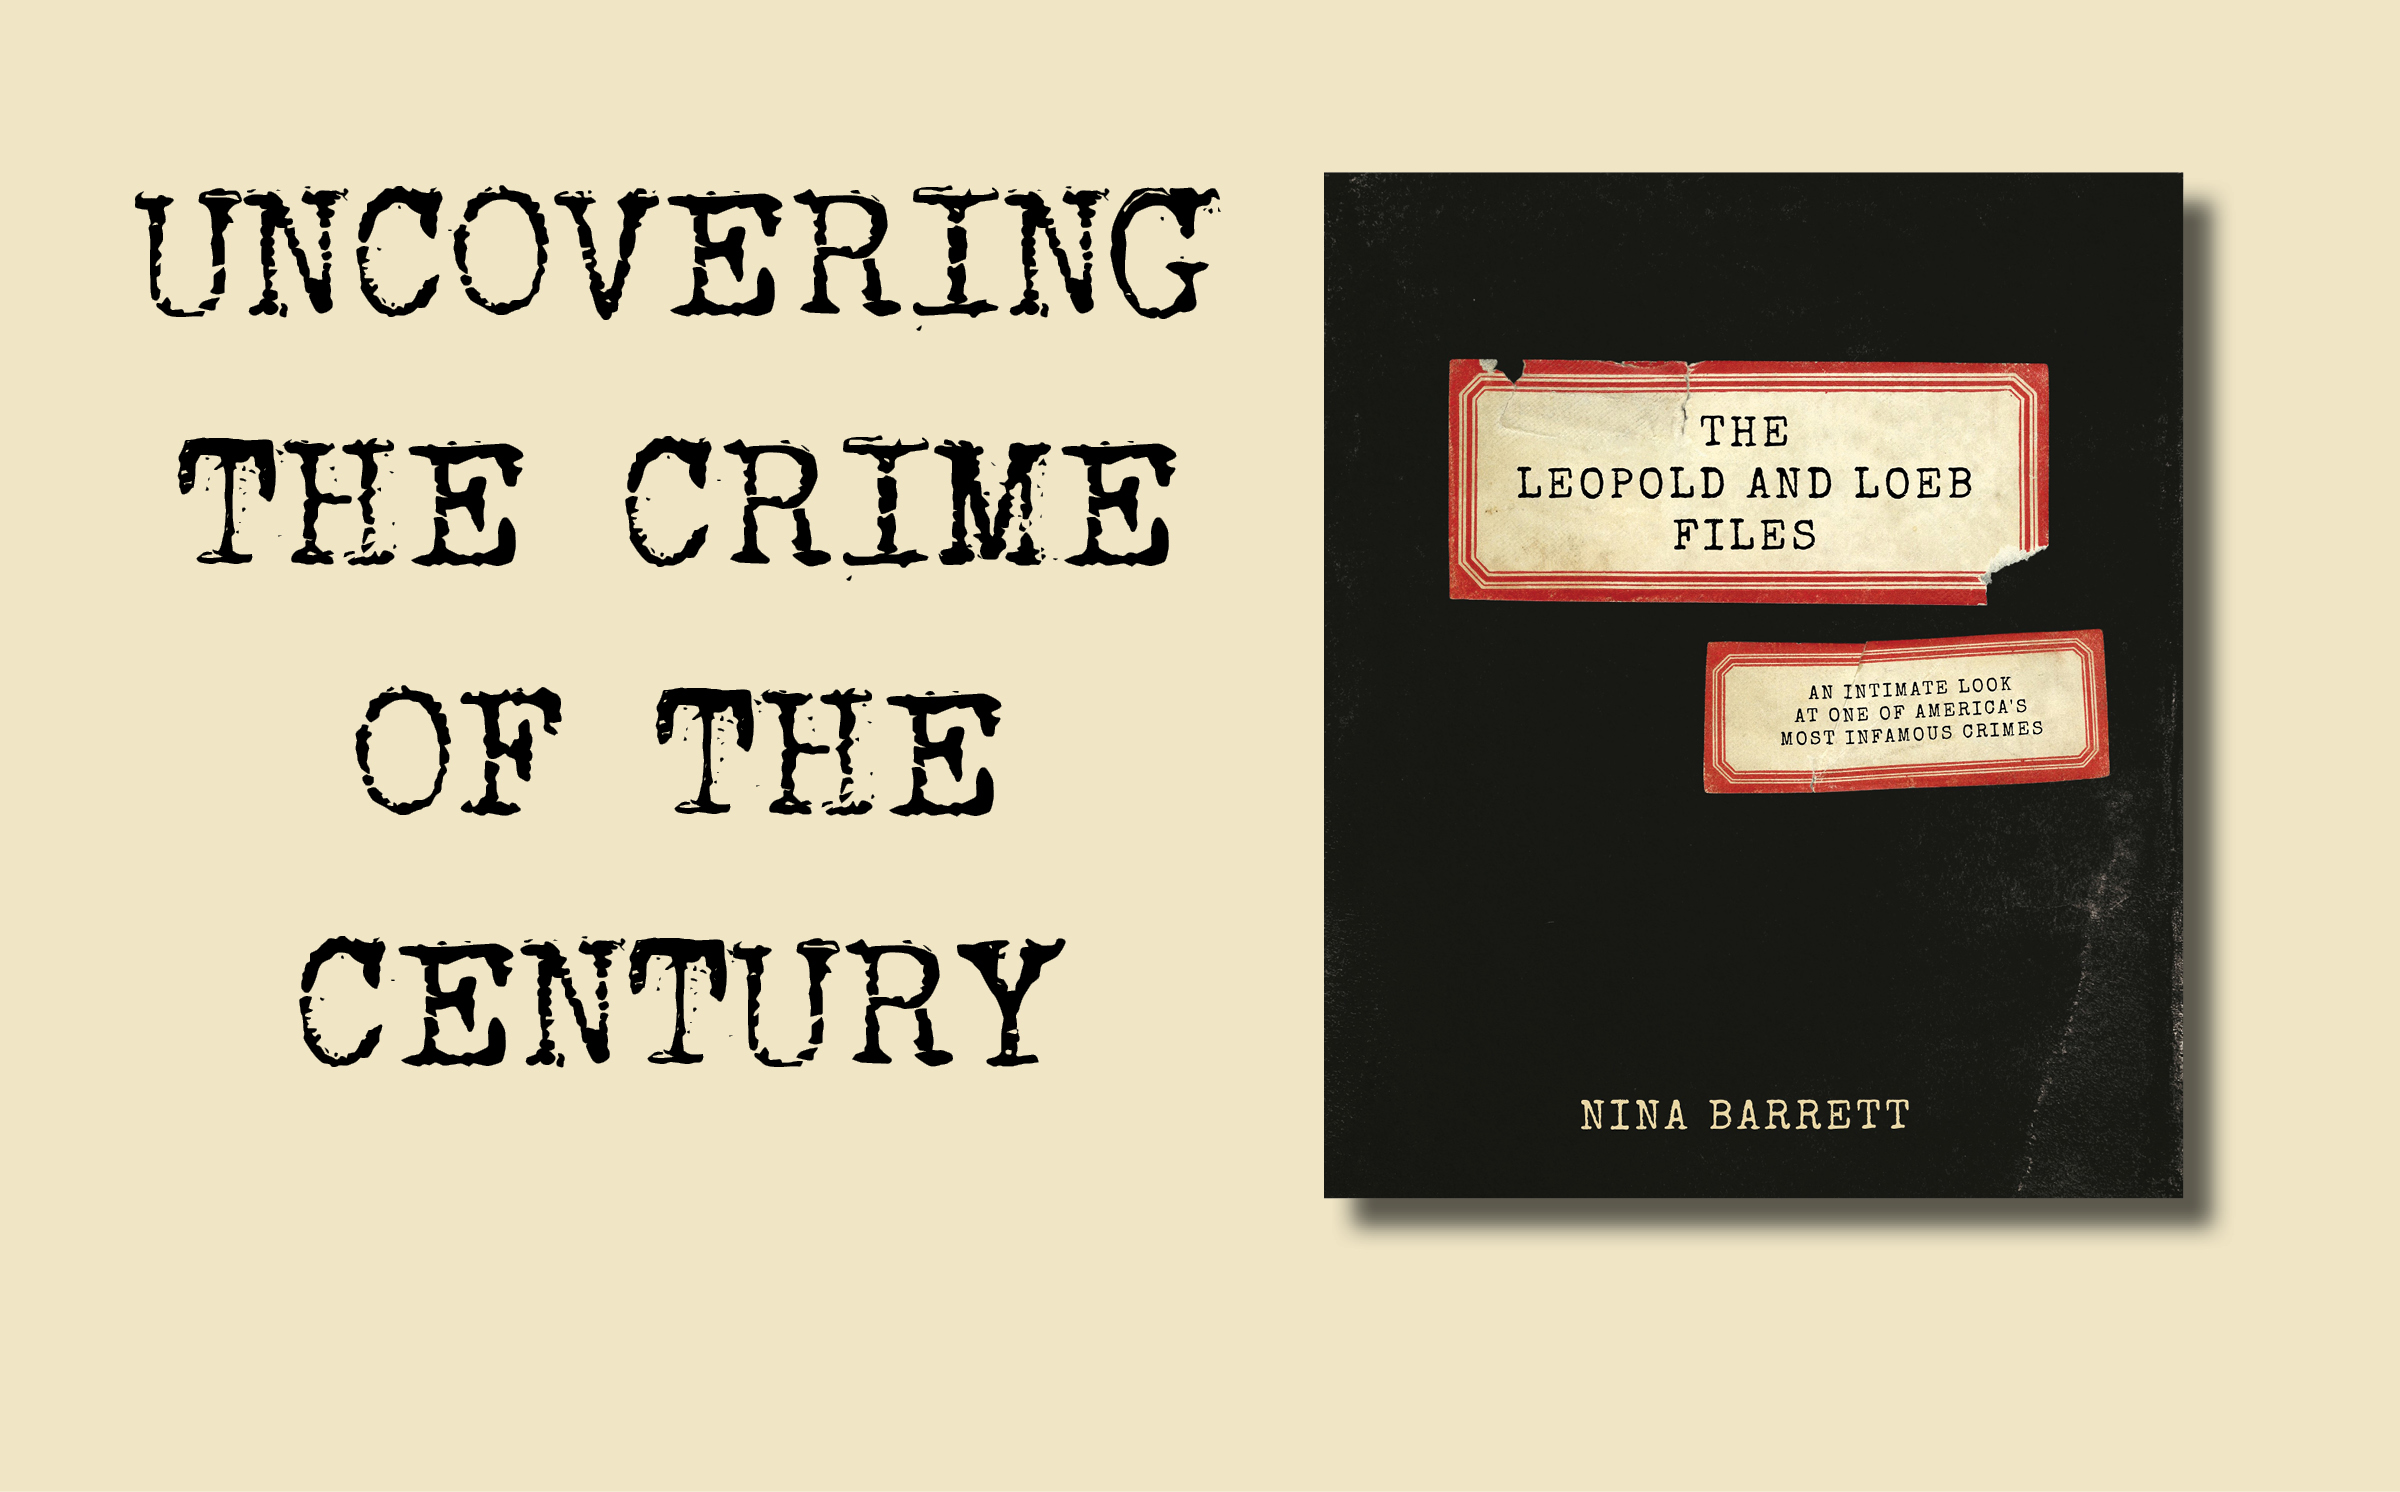 Focus On The Book: The Leopold and Loeb Files by Nina Barrett